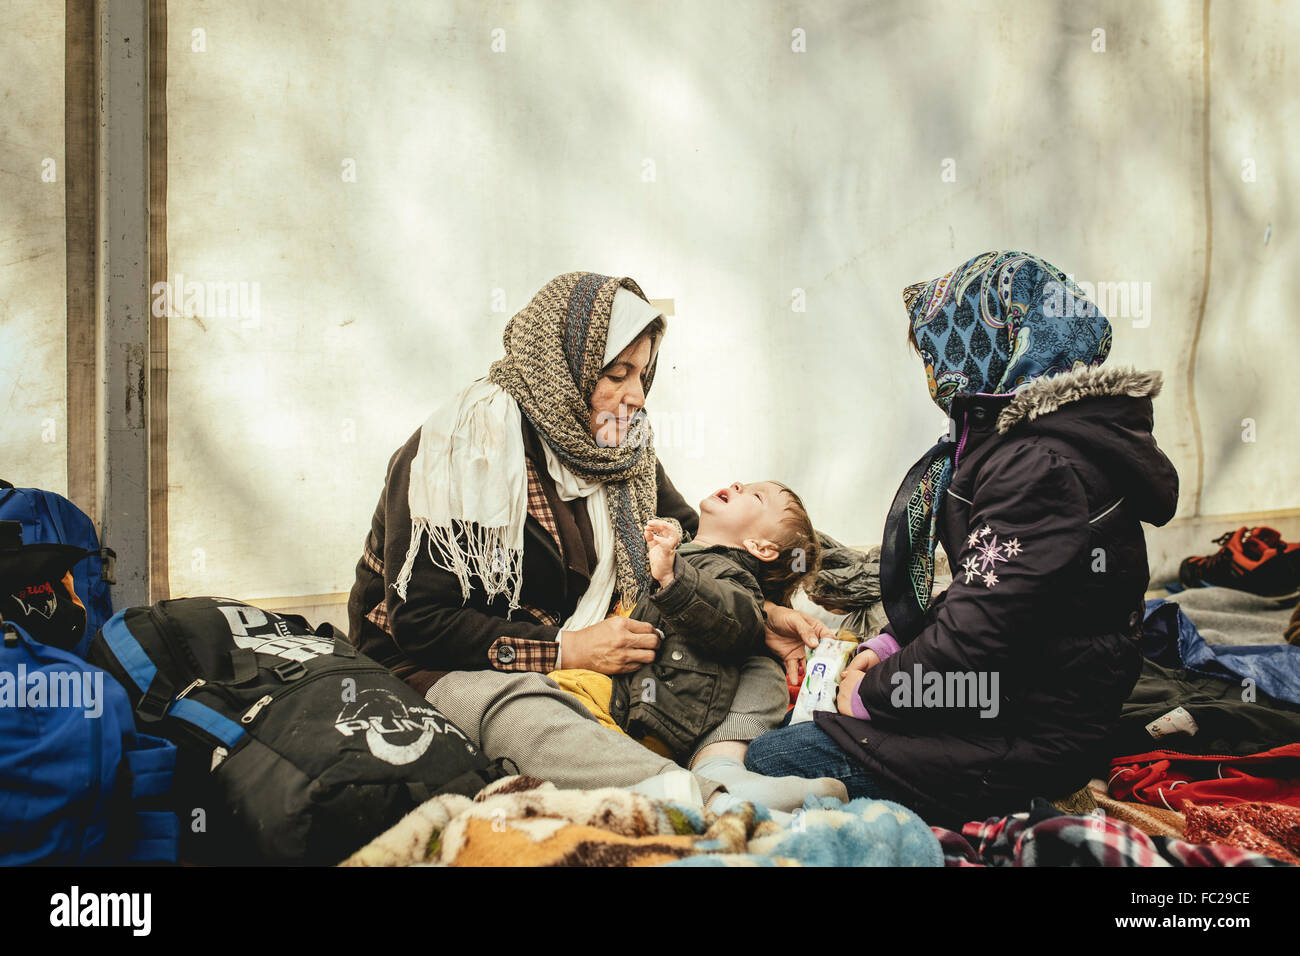 Refugees in a refugee camp, first reception facility on the border with Austria, Wegscheid, Bavaria, Germany - Stock Image